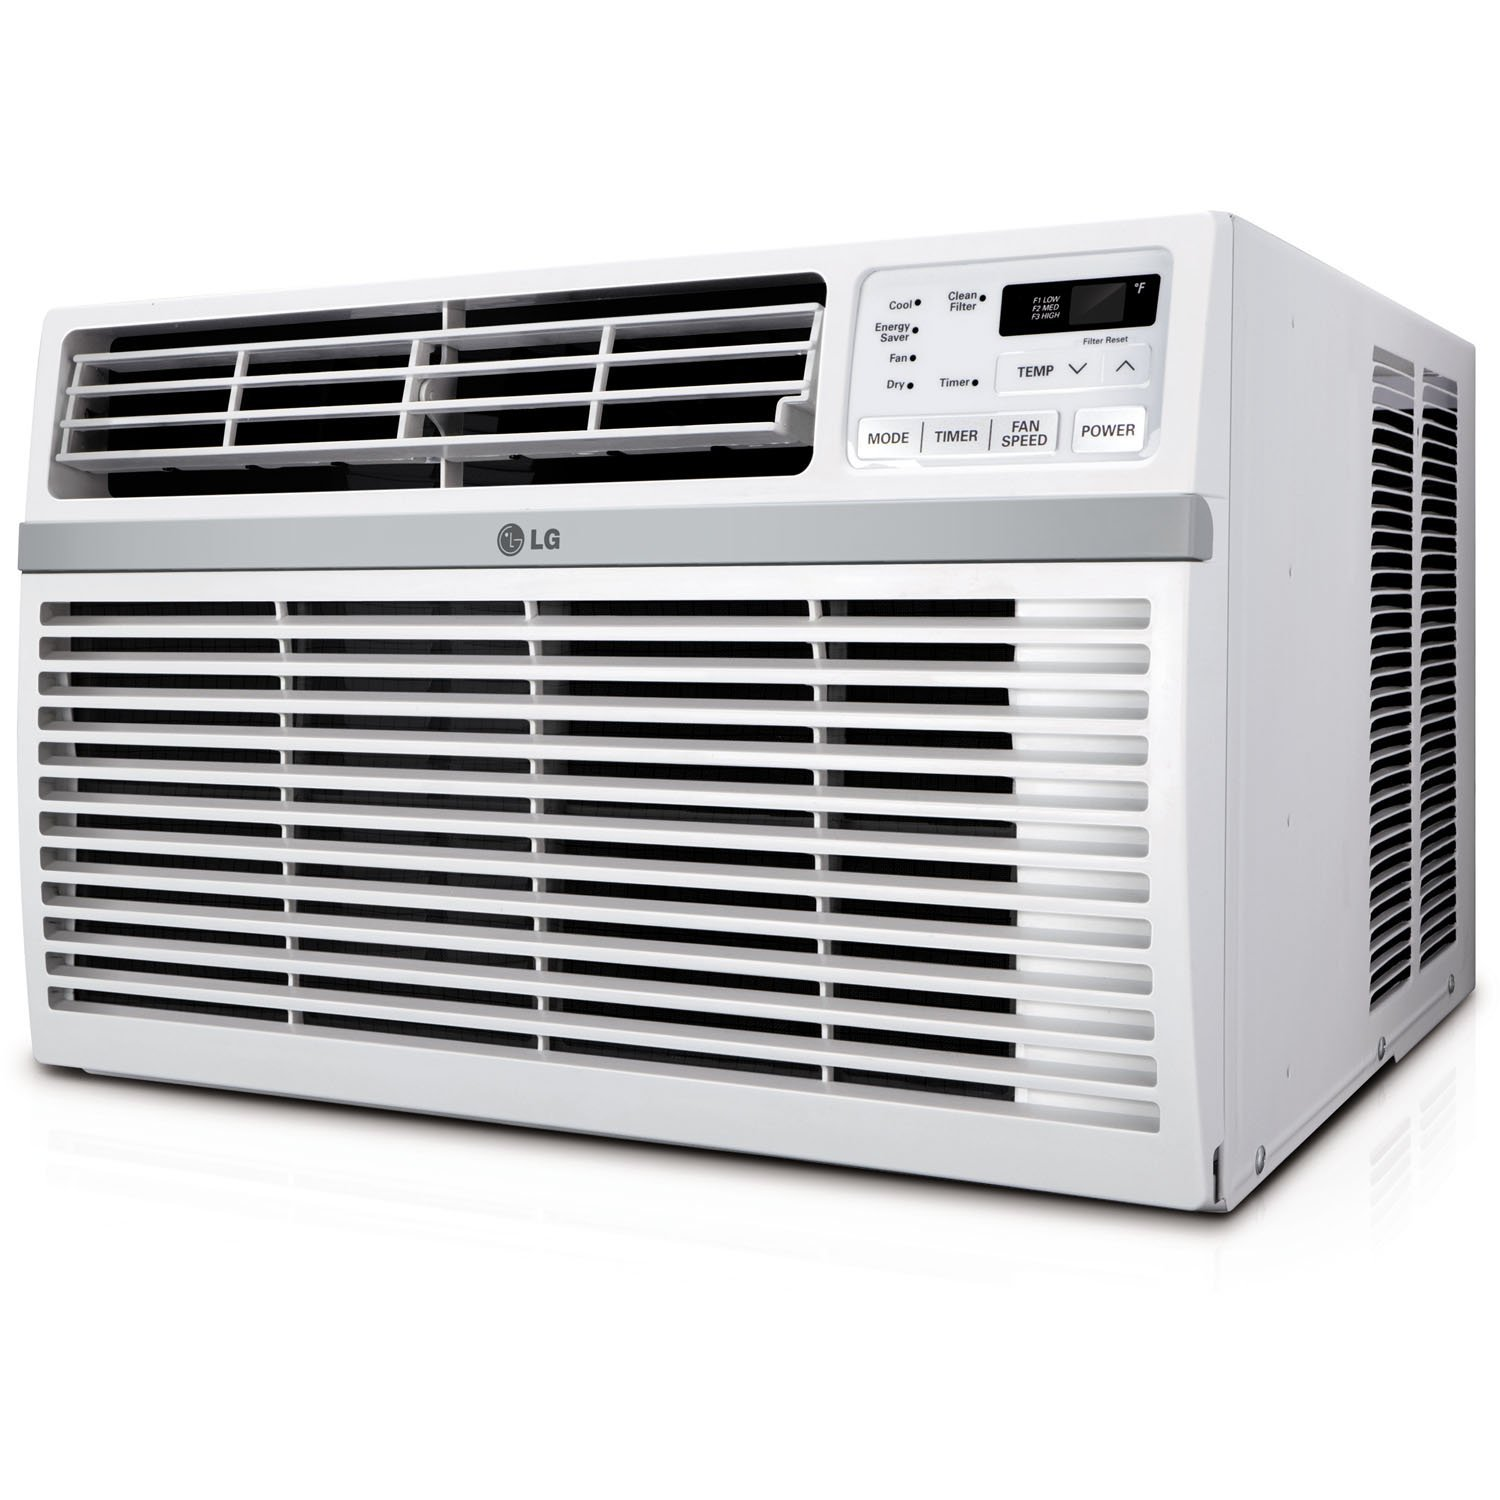 Review of LG LW8016ER 8,000 BTU 115V Window-Mounted AIR Conditioner with Remote Control